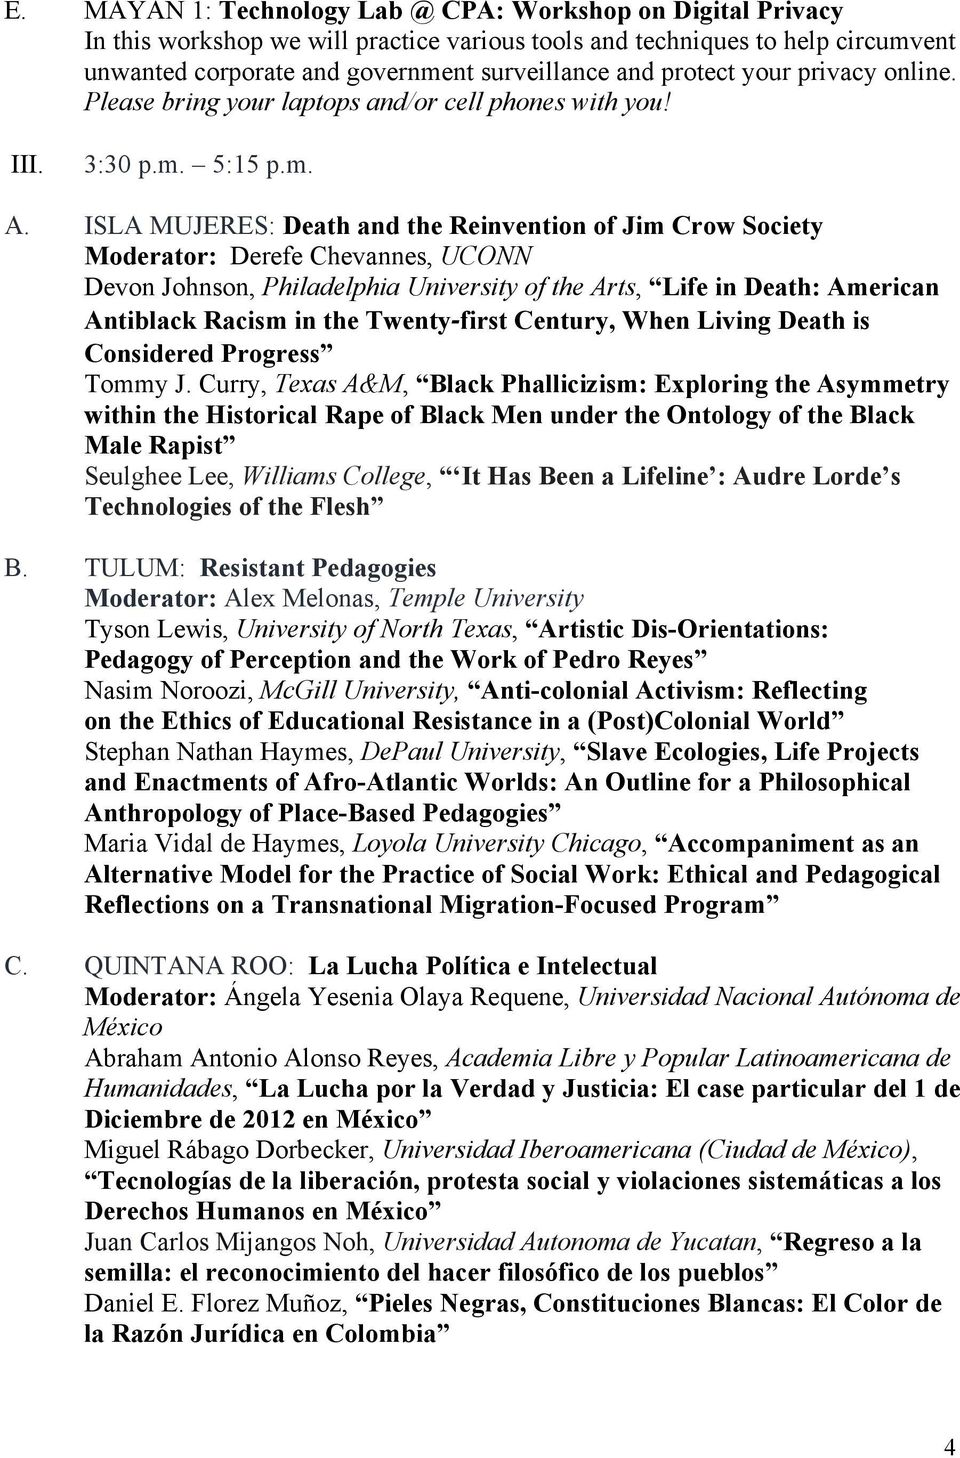 ISLA MUJERES: Death and the Reinvention of Jim Crow Society Moderator: Derefe Chevannes, UCONN Devon Johnson, Philadelphia University of the Arts, Life in Death: American Antiblack Racism in the